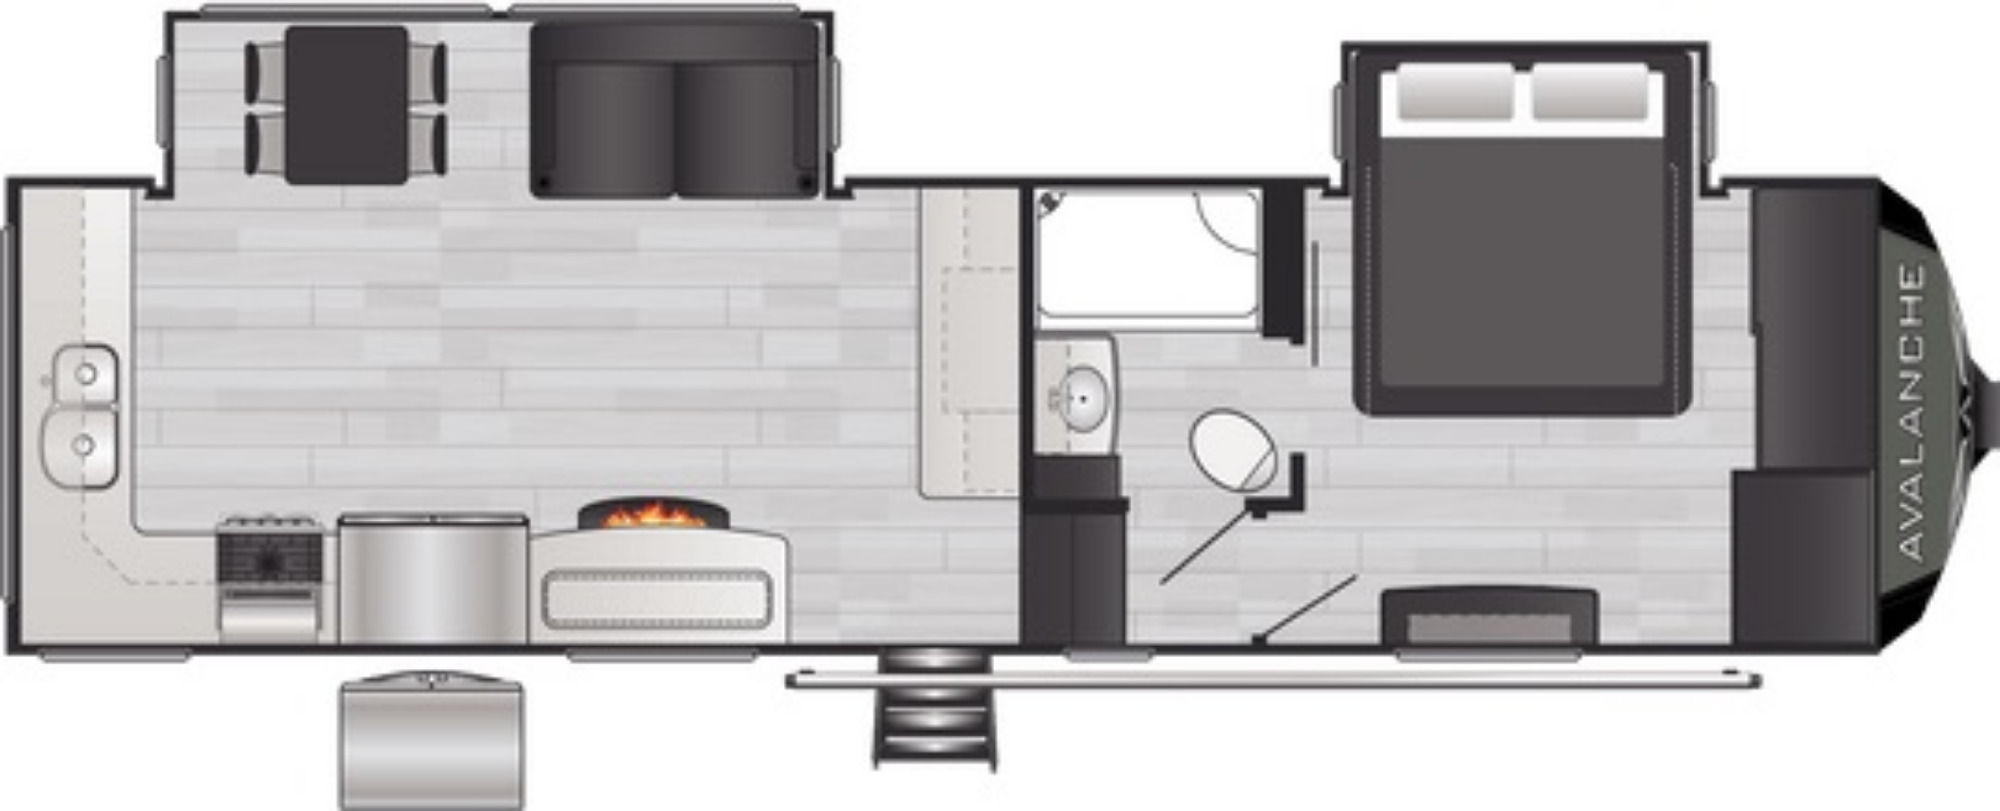 View Floor Plan for 2021 KEYSTONE AVALANCHE 295RK